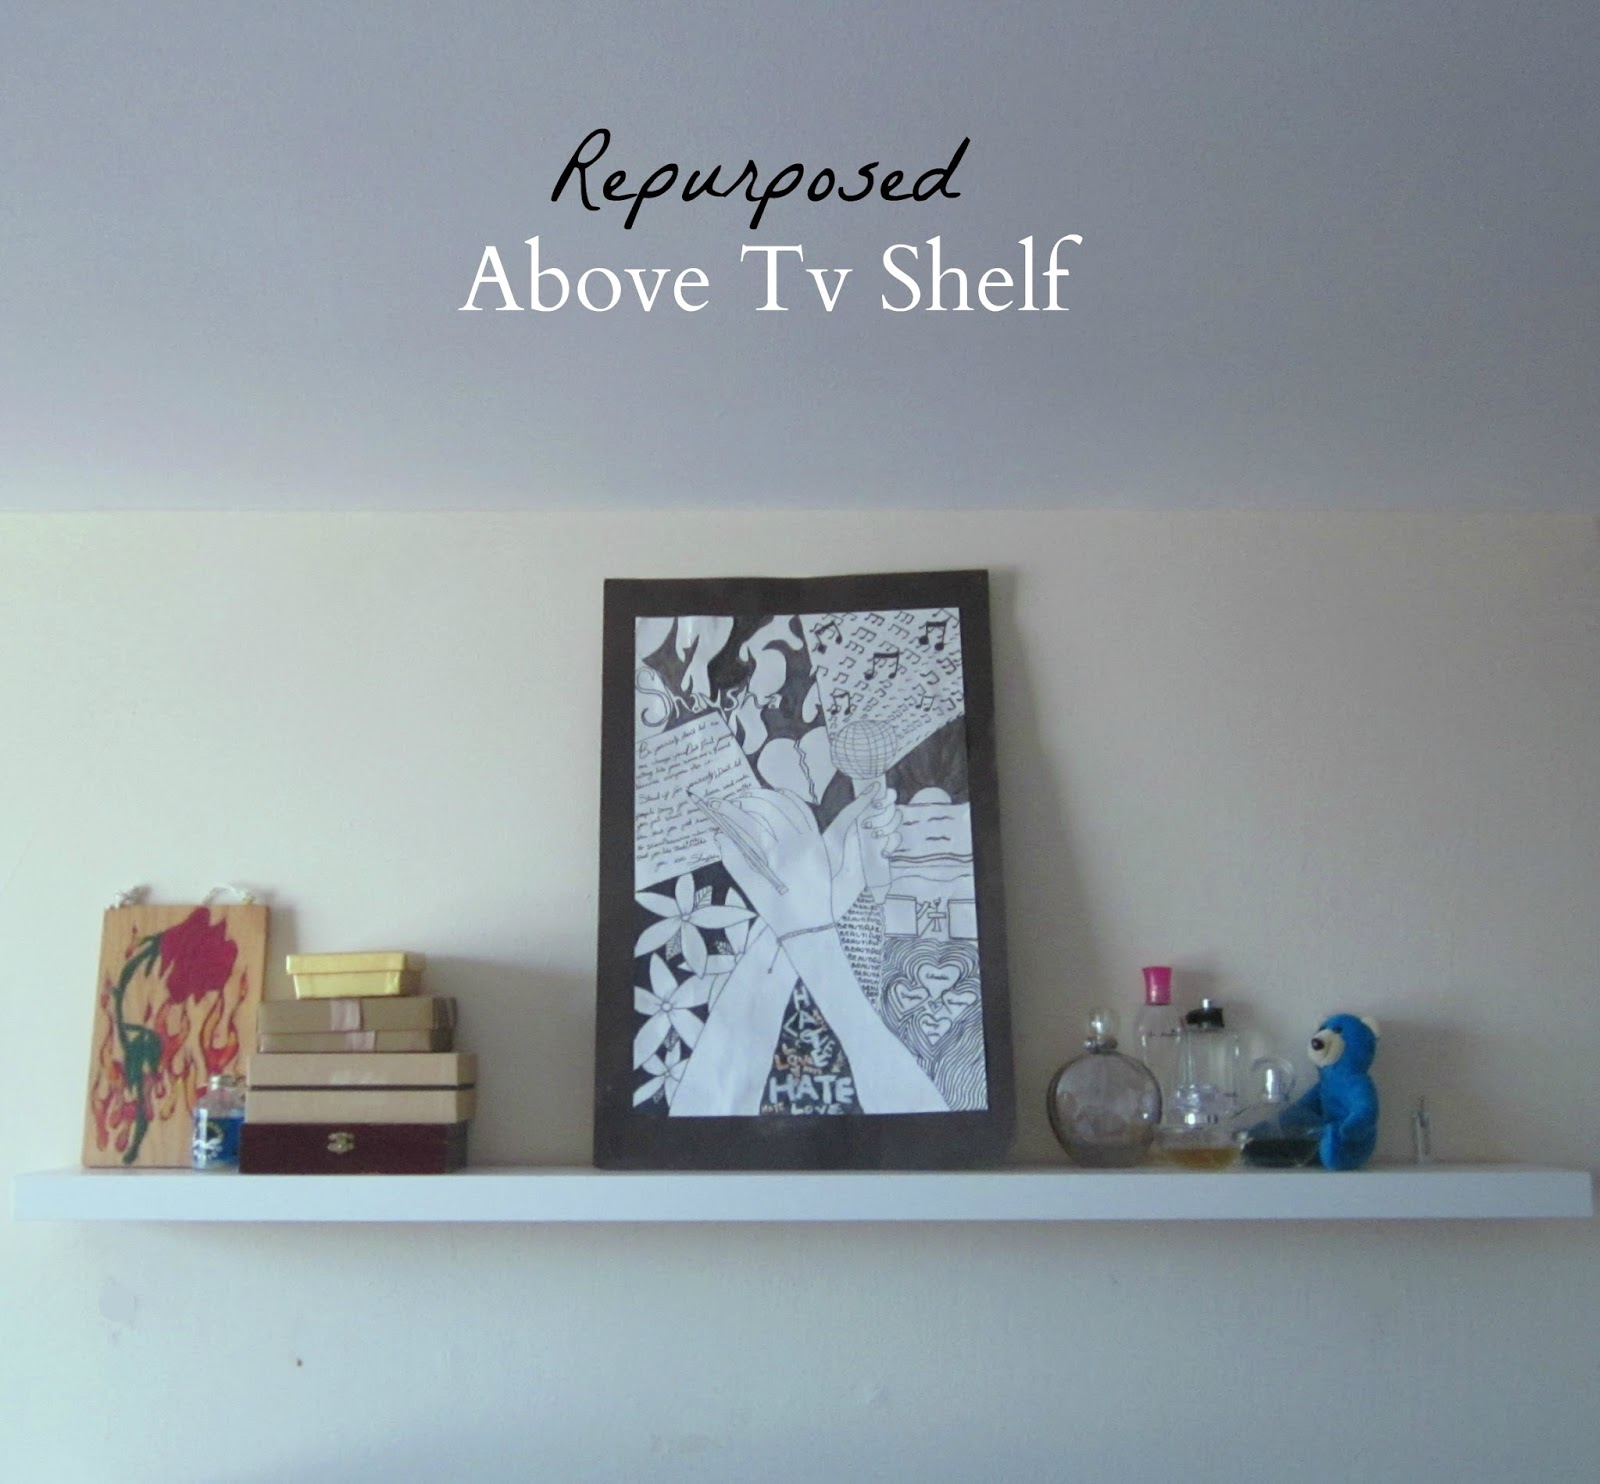 Repurposed Above Tv Shelf